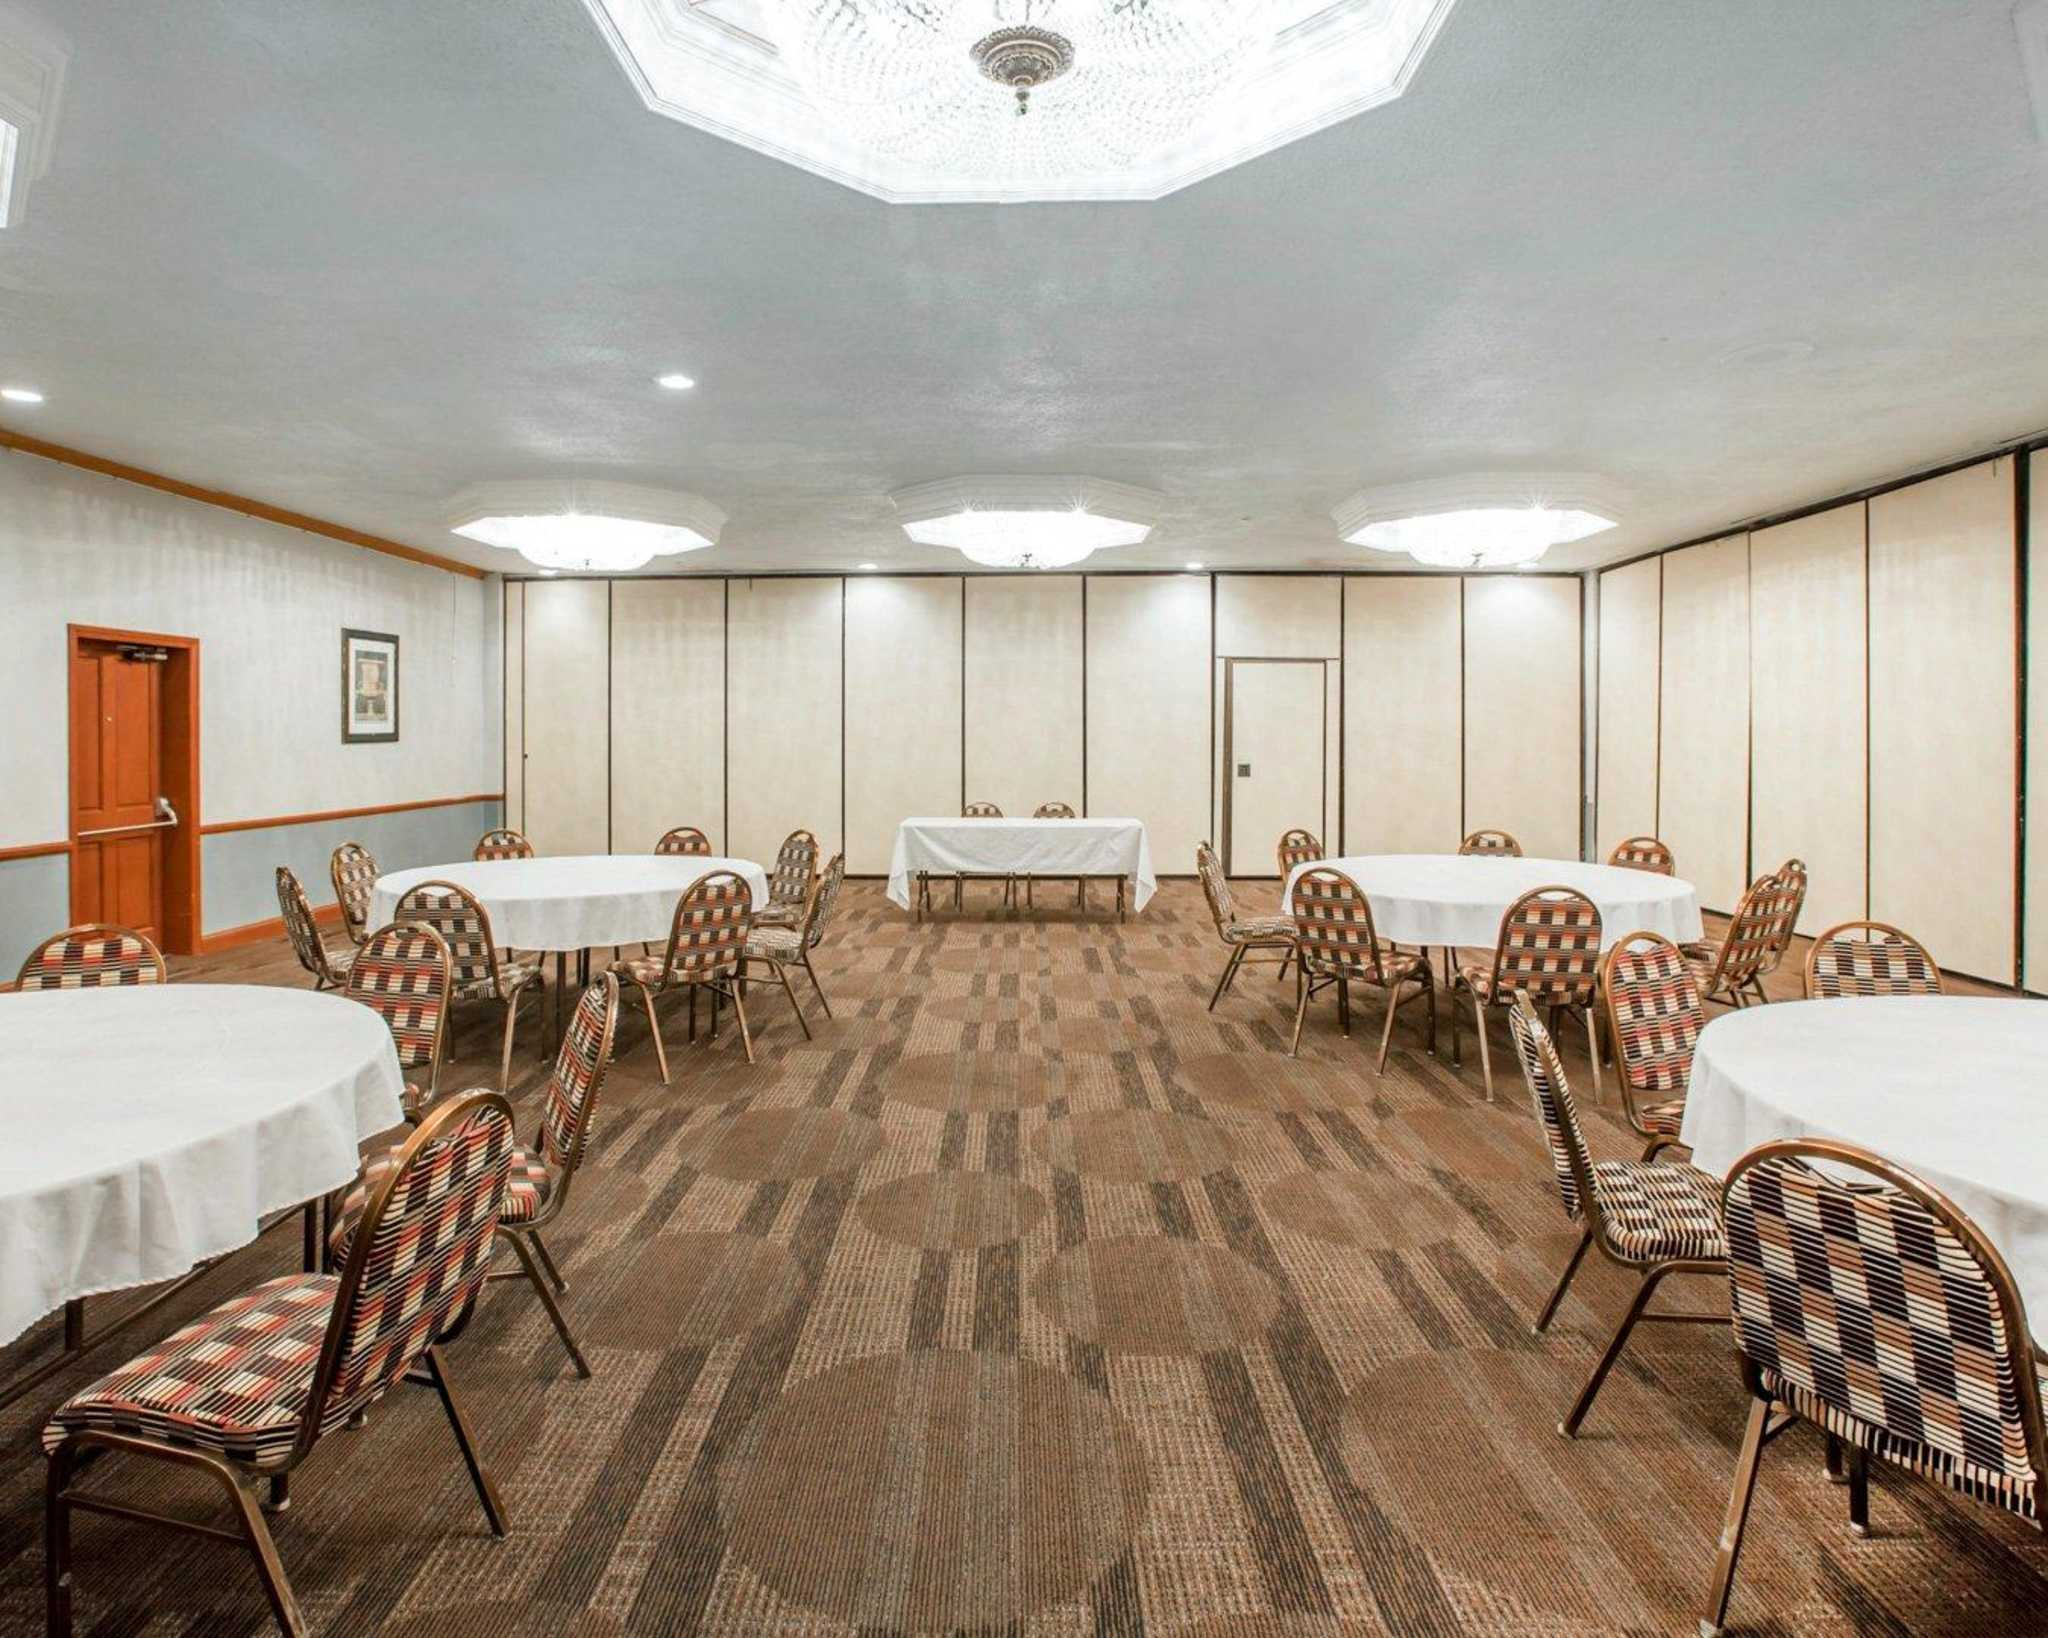 Clarion Inn Conference Center image 23